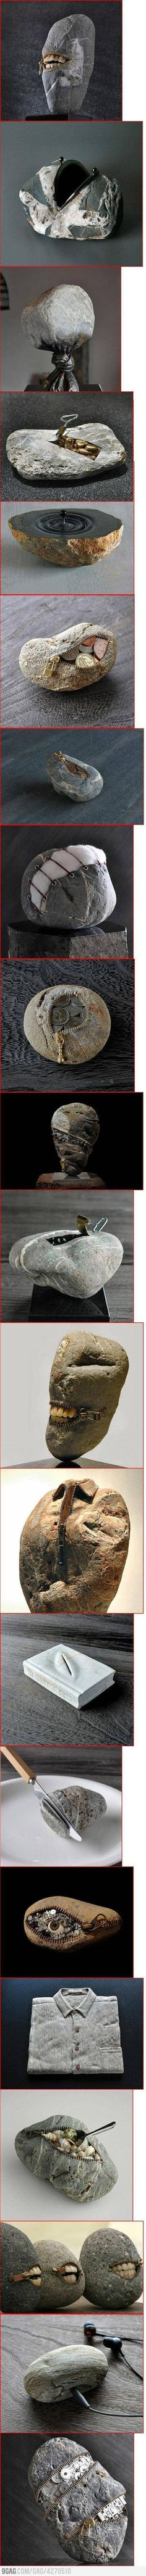 Art made with rocks!